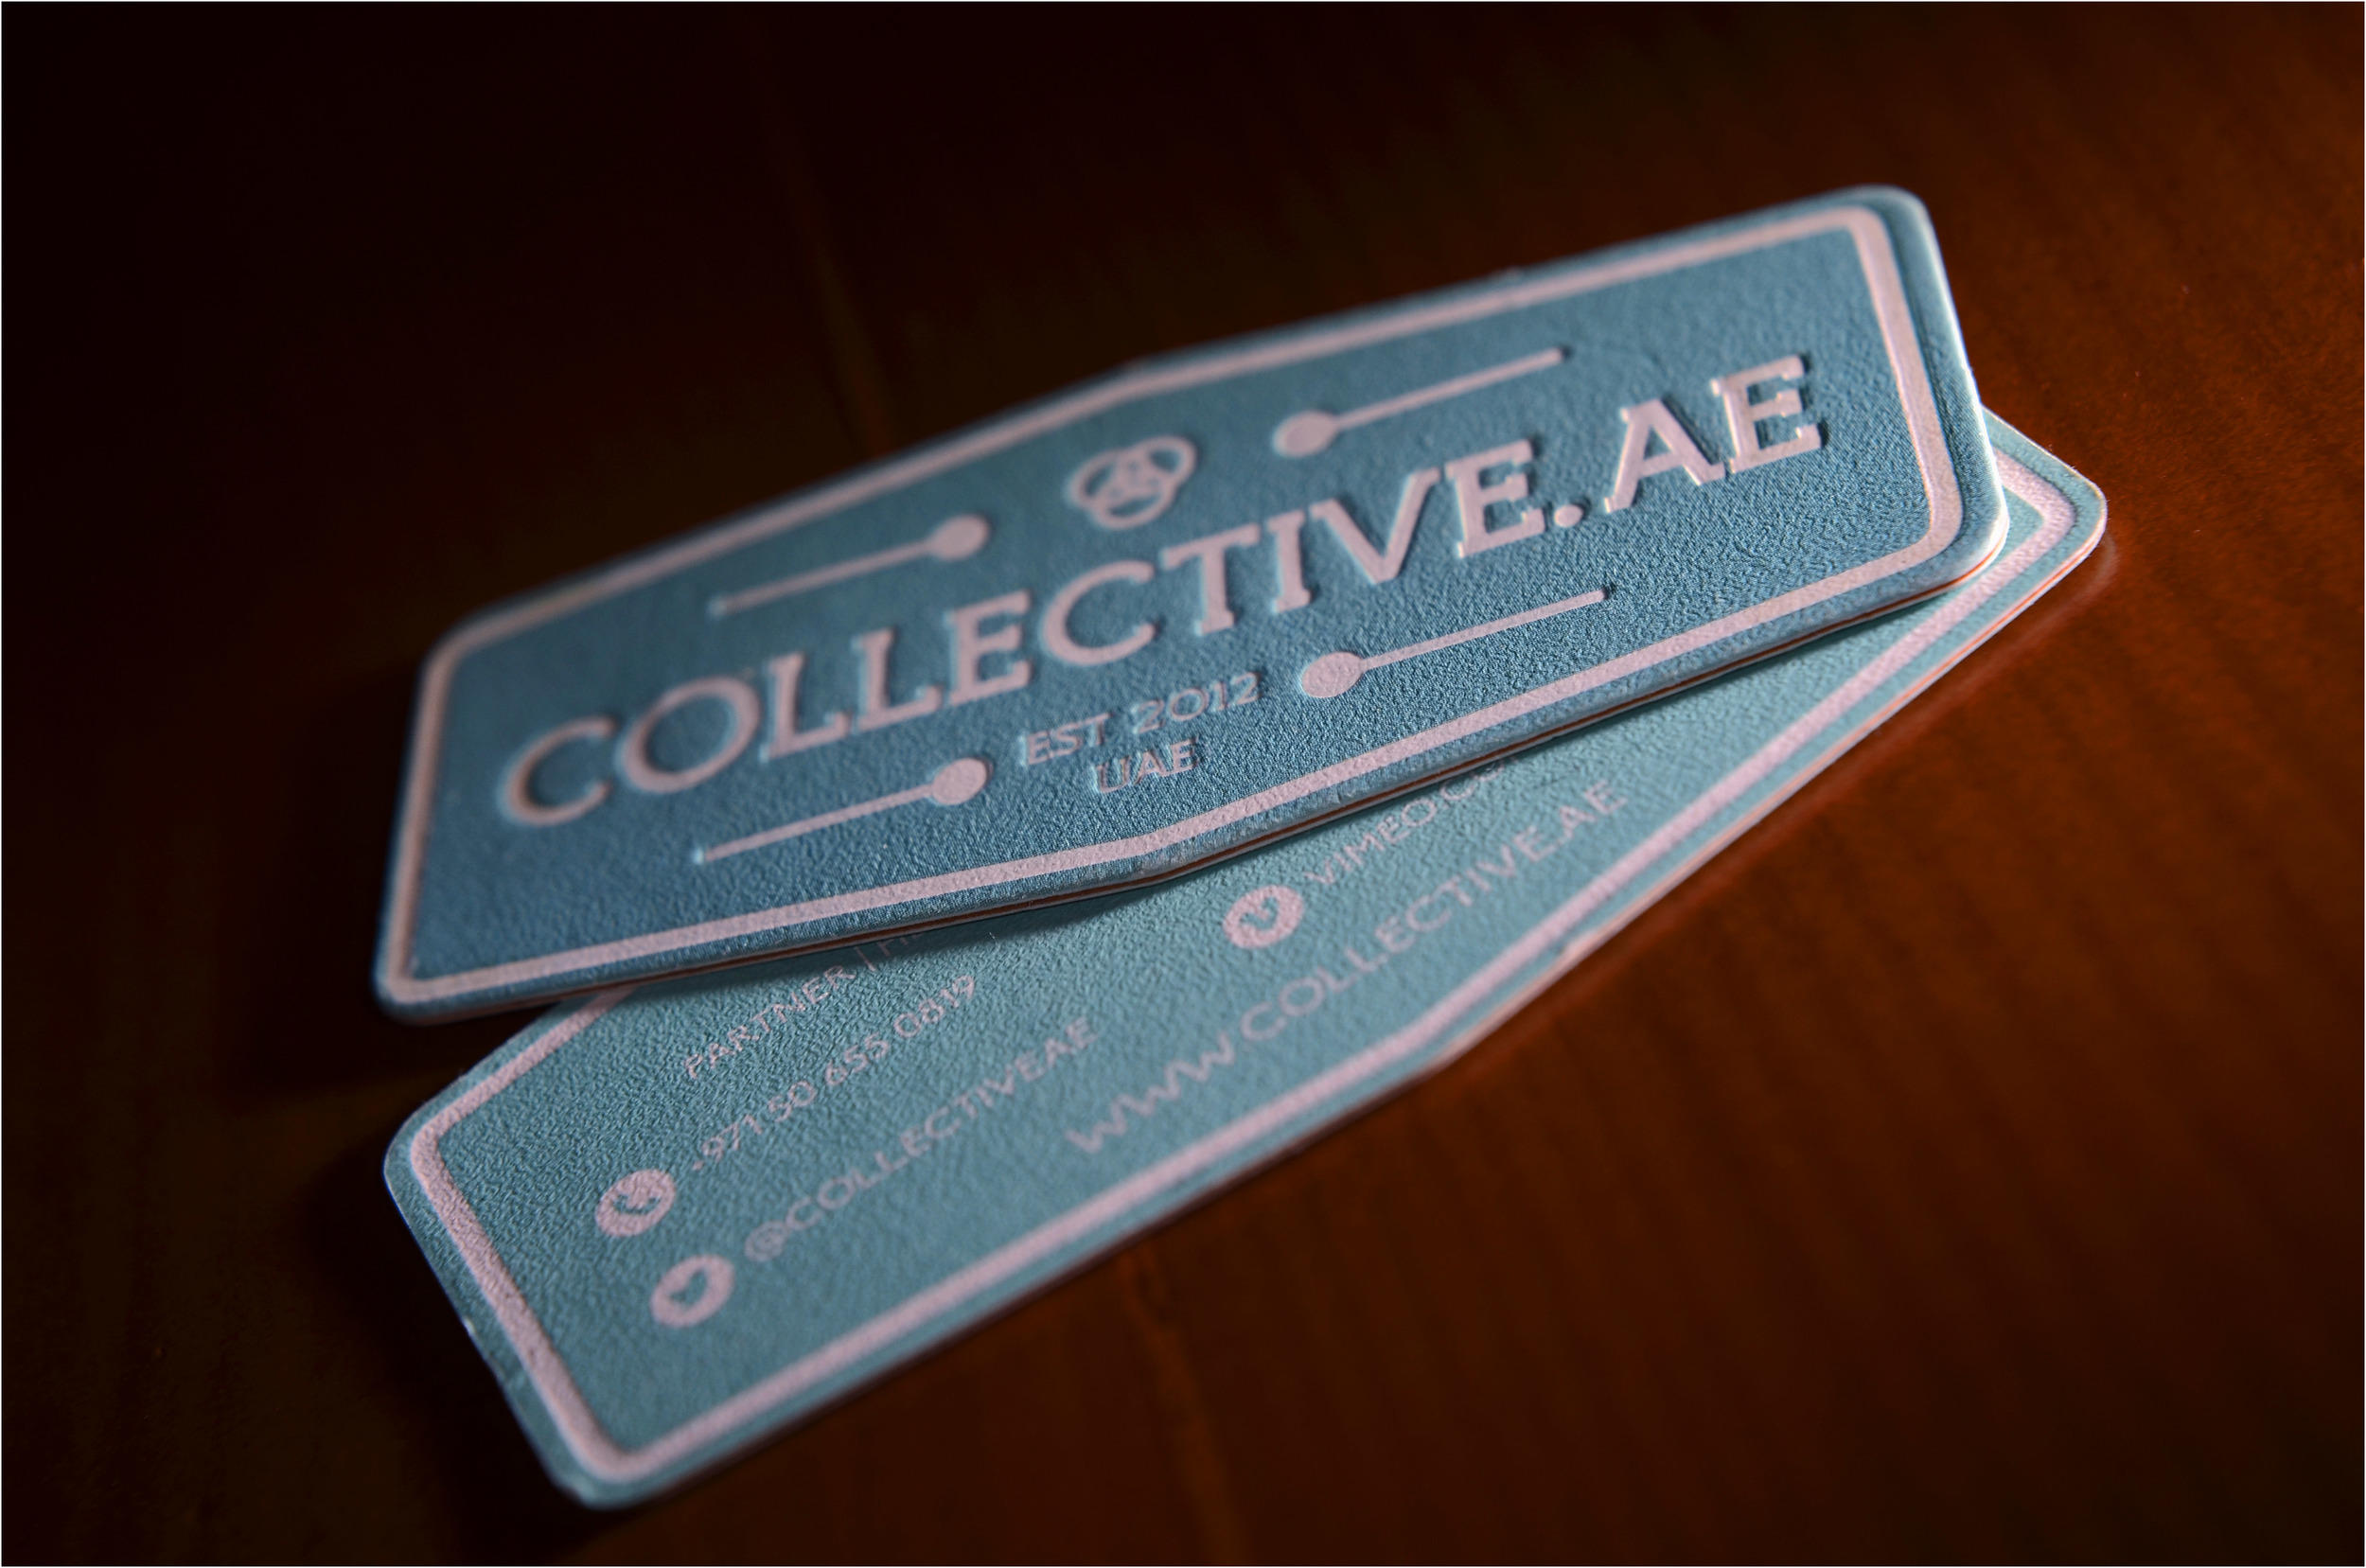 Collective.ae